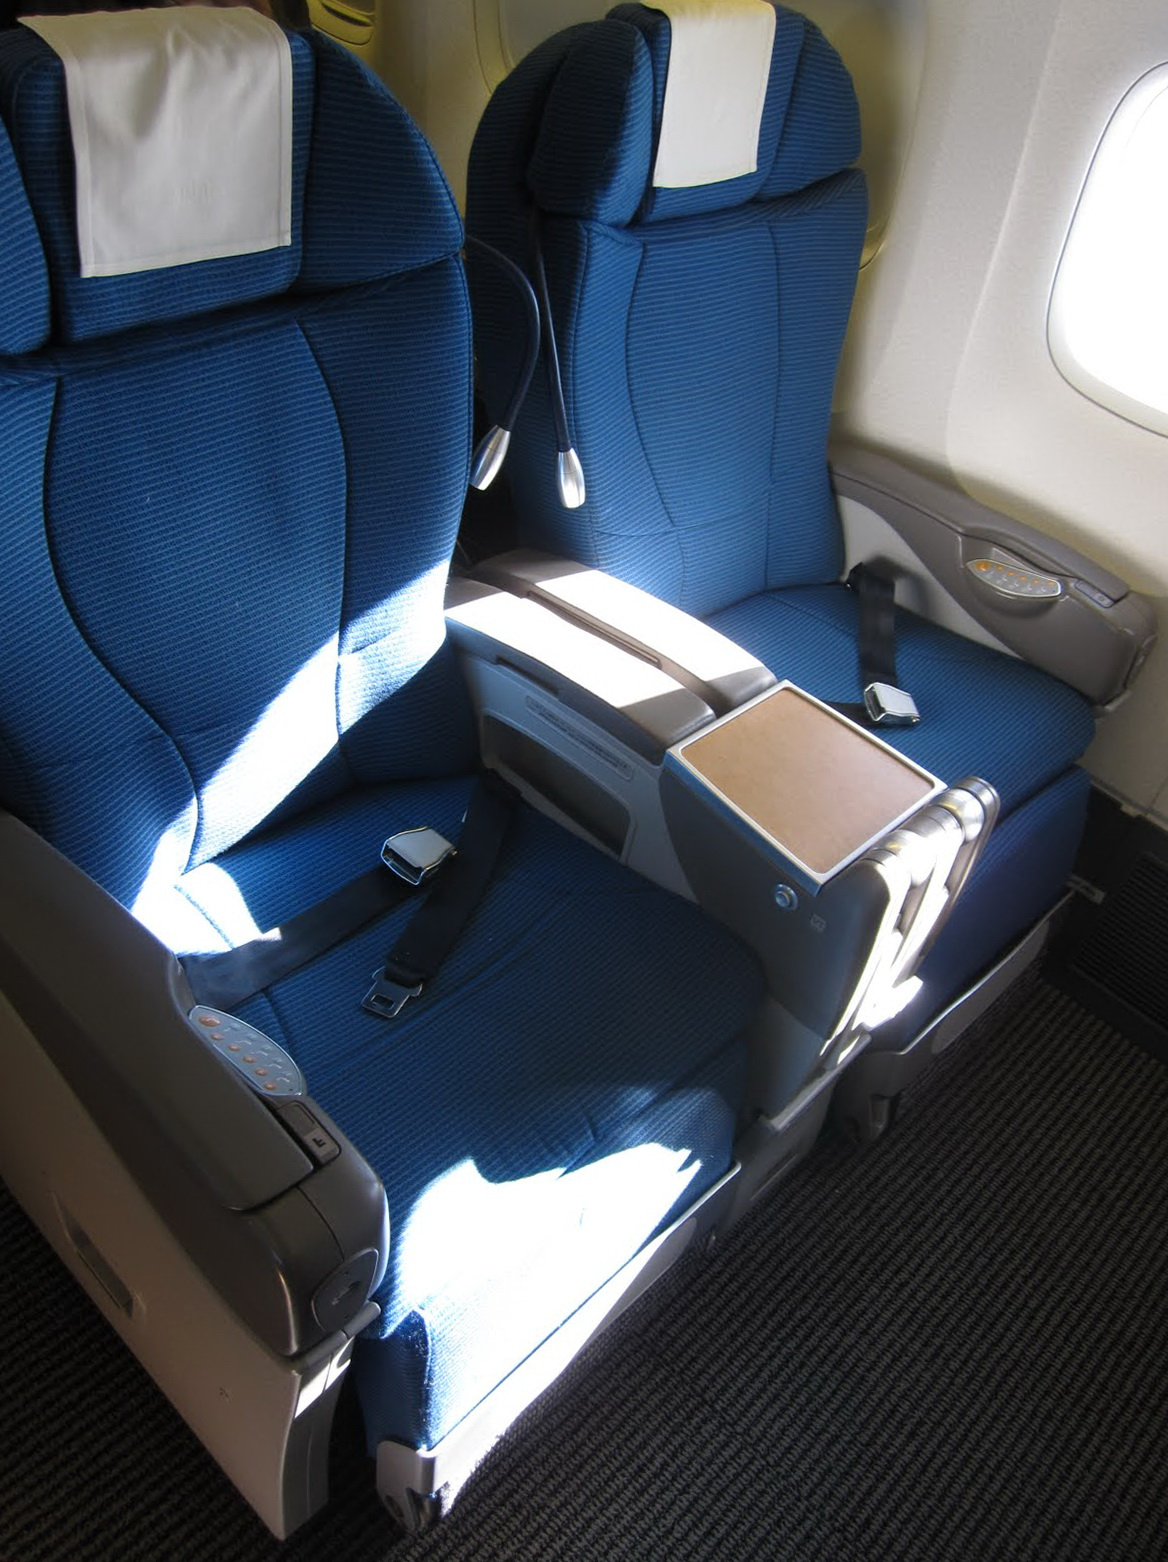 Travel Seat Cushions Airline Seats